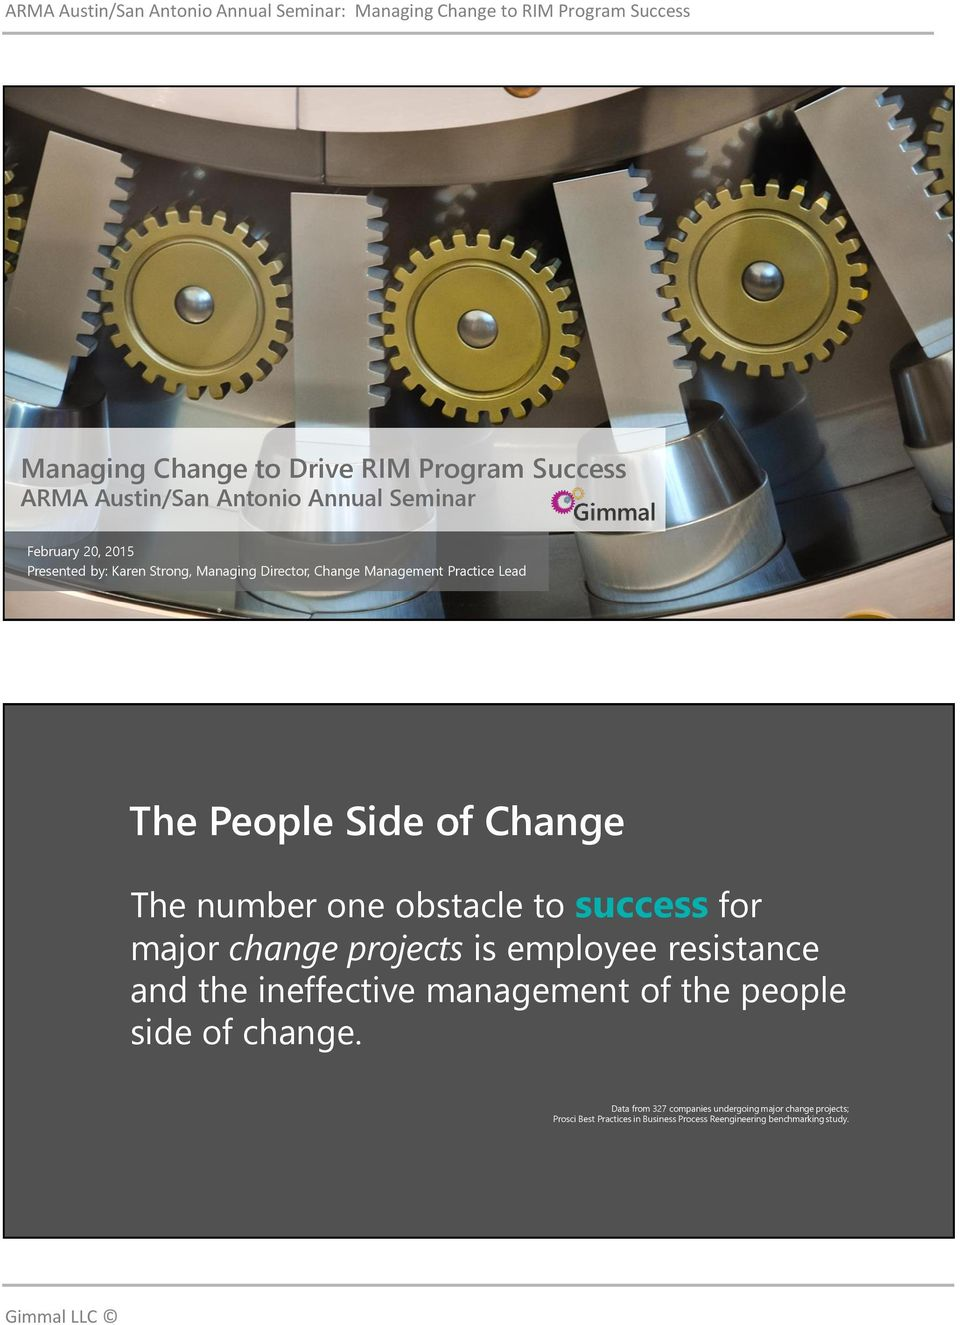 for major change projects is employee resistance and the ineffective management of the people side of change.